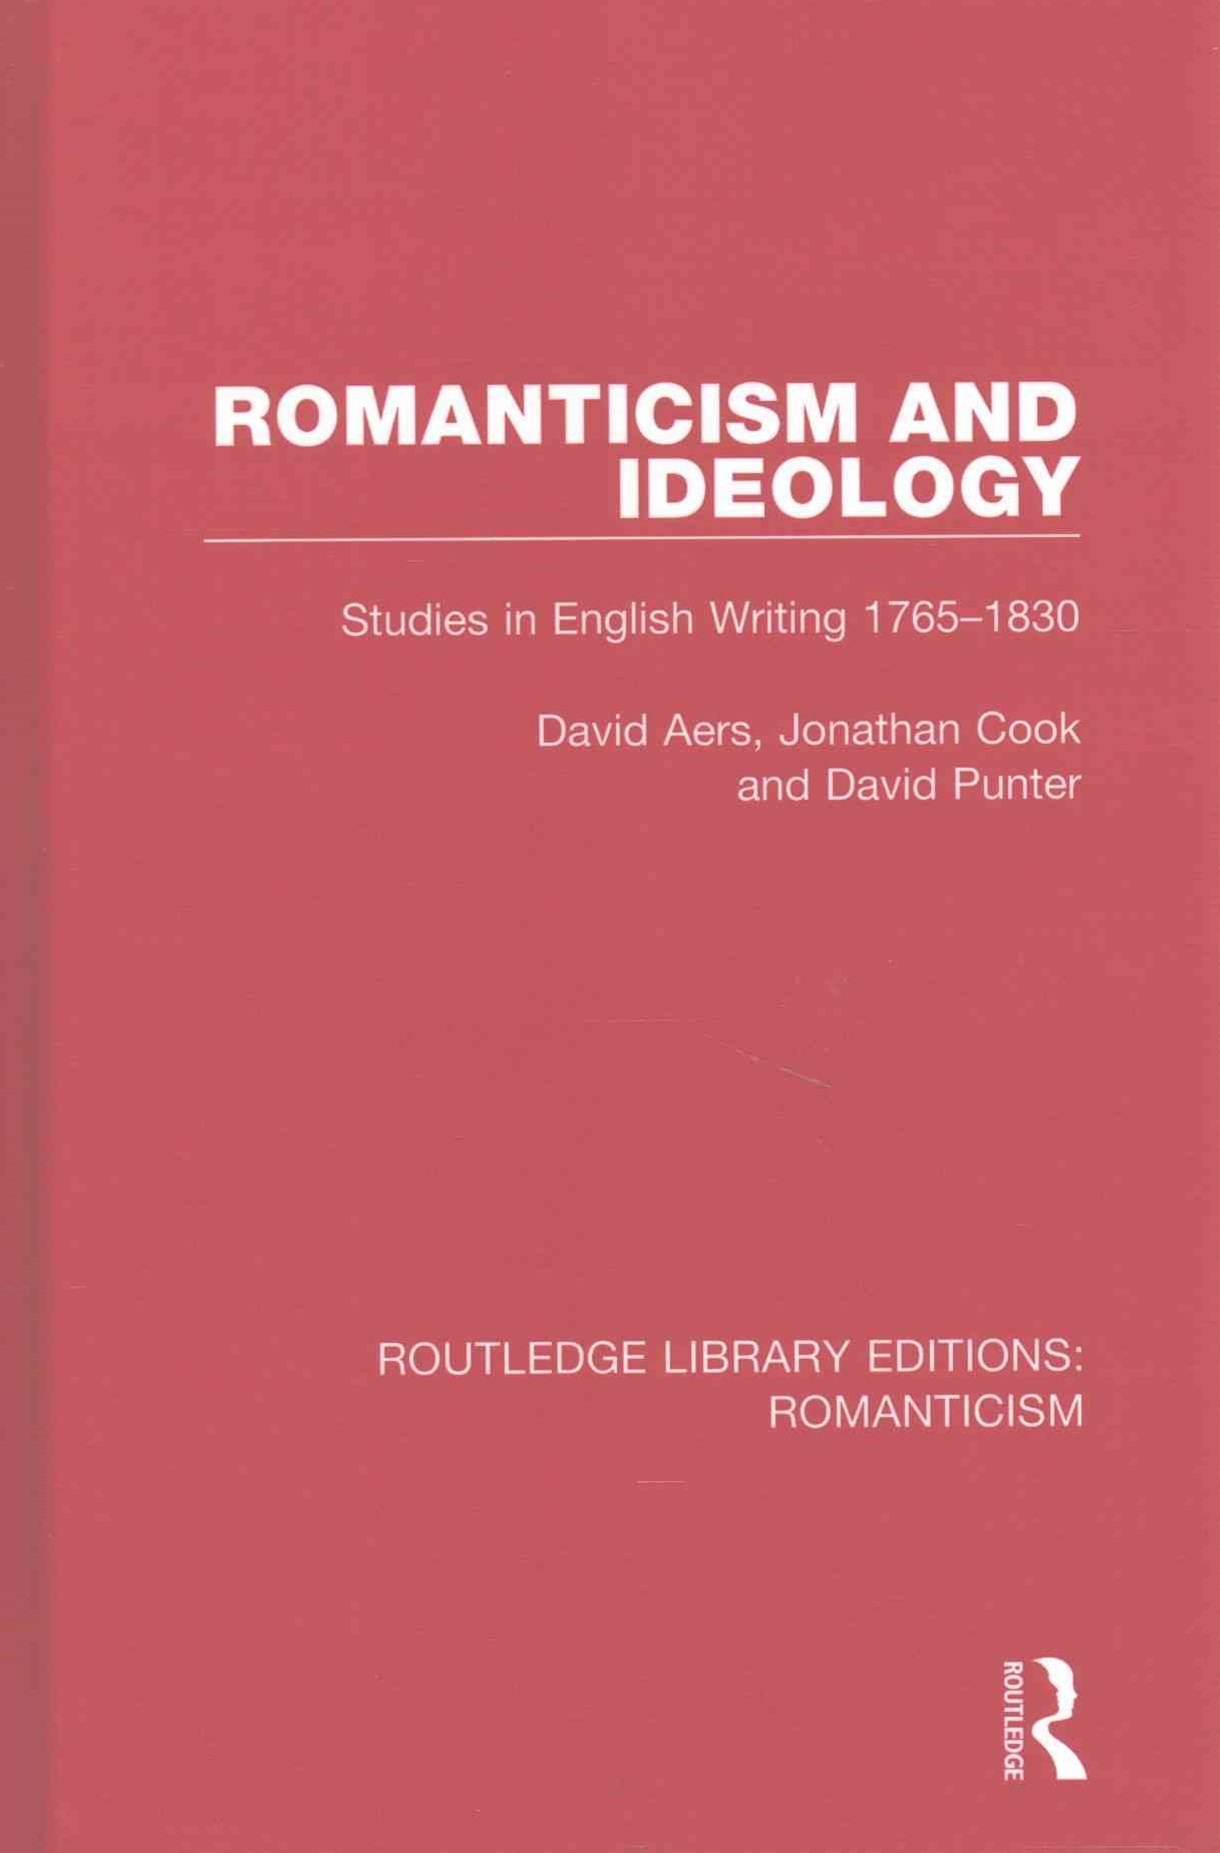 Romanticism and Ideology